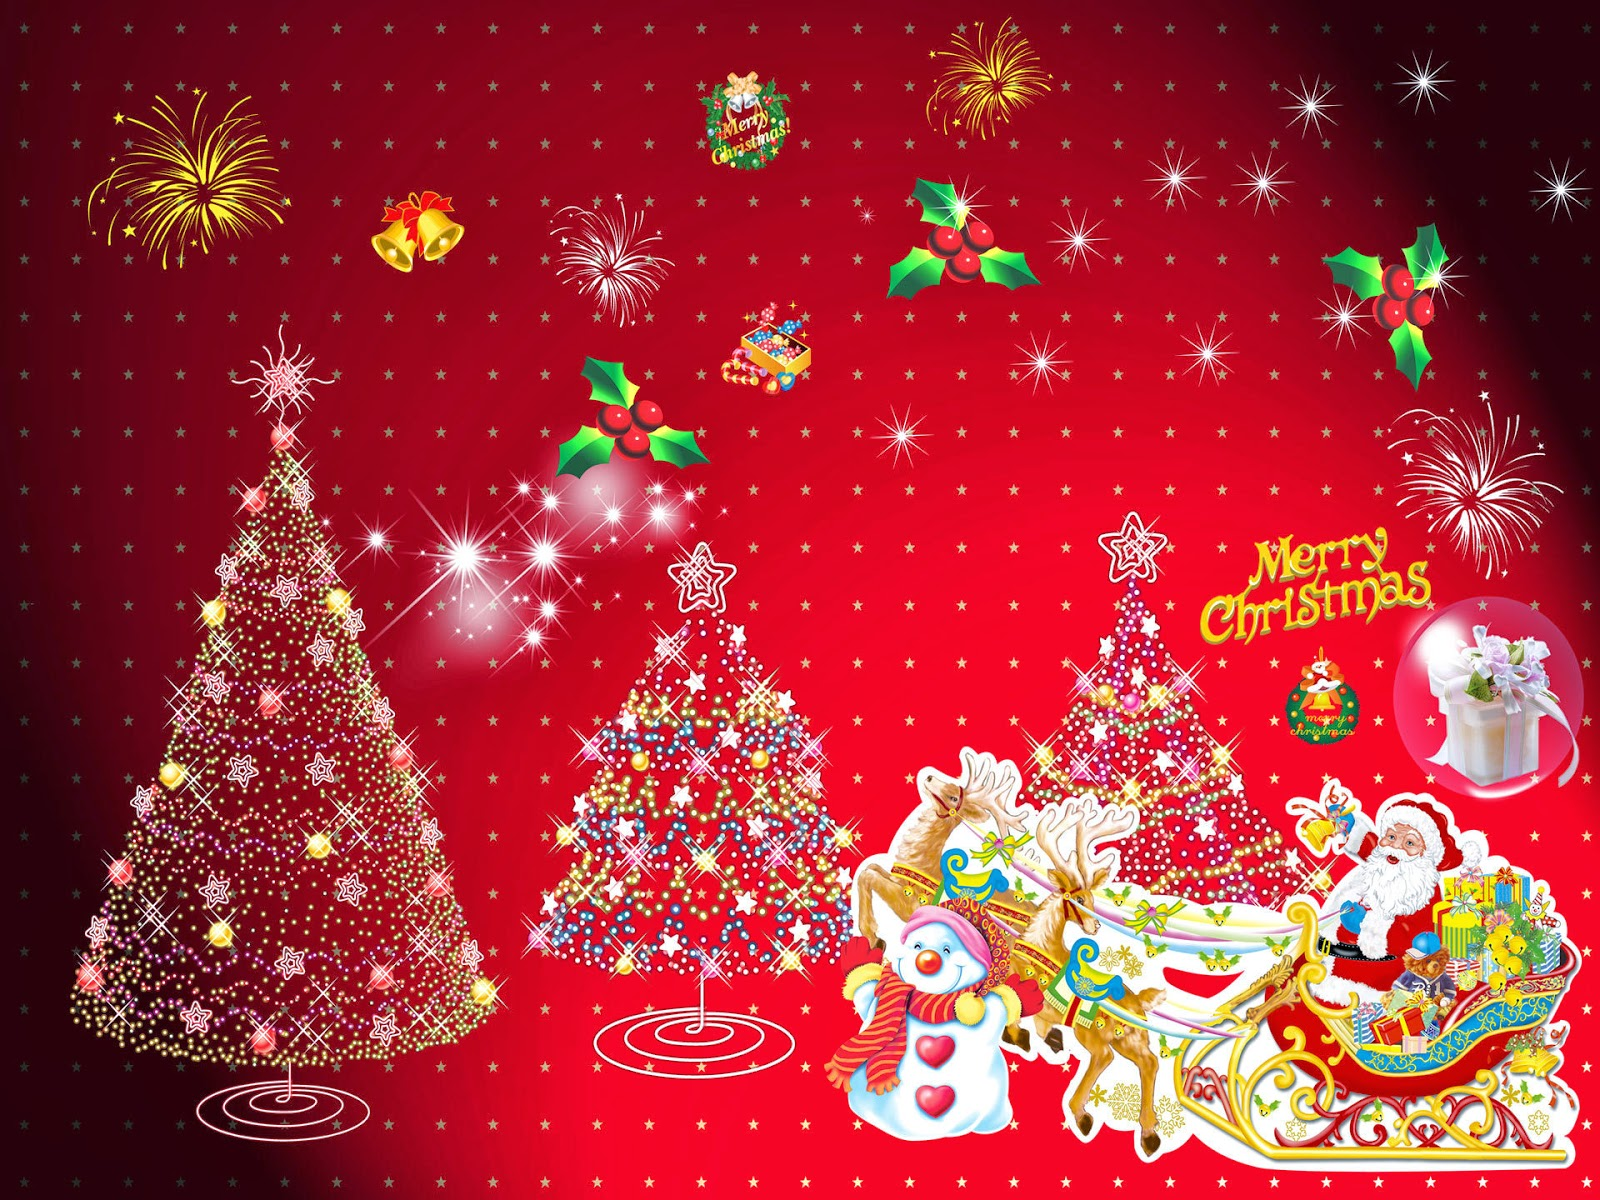 We Wish You A Merry Christmas 2014 | Diva Likes